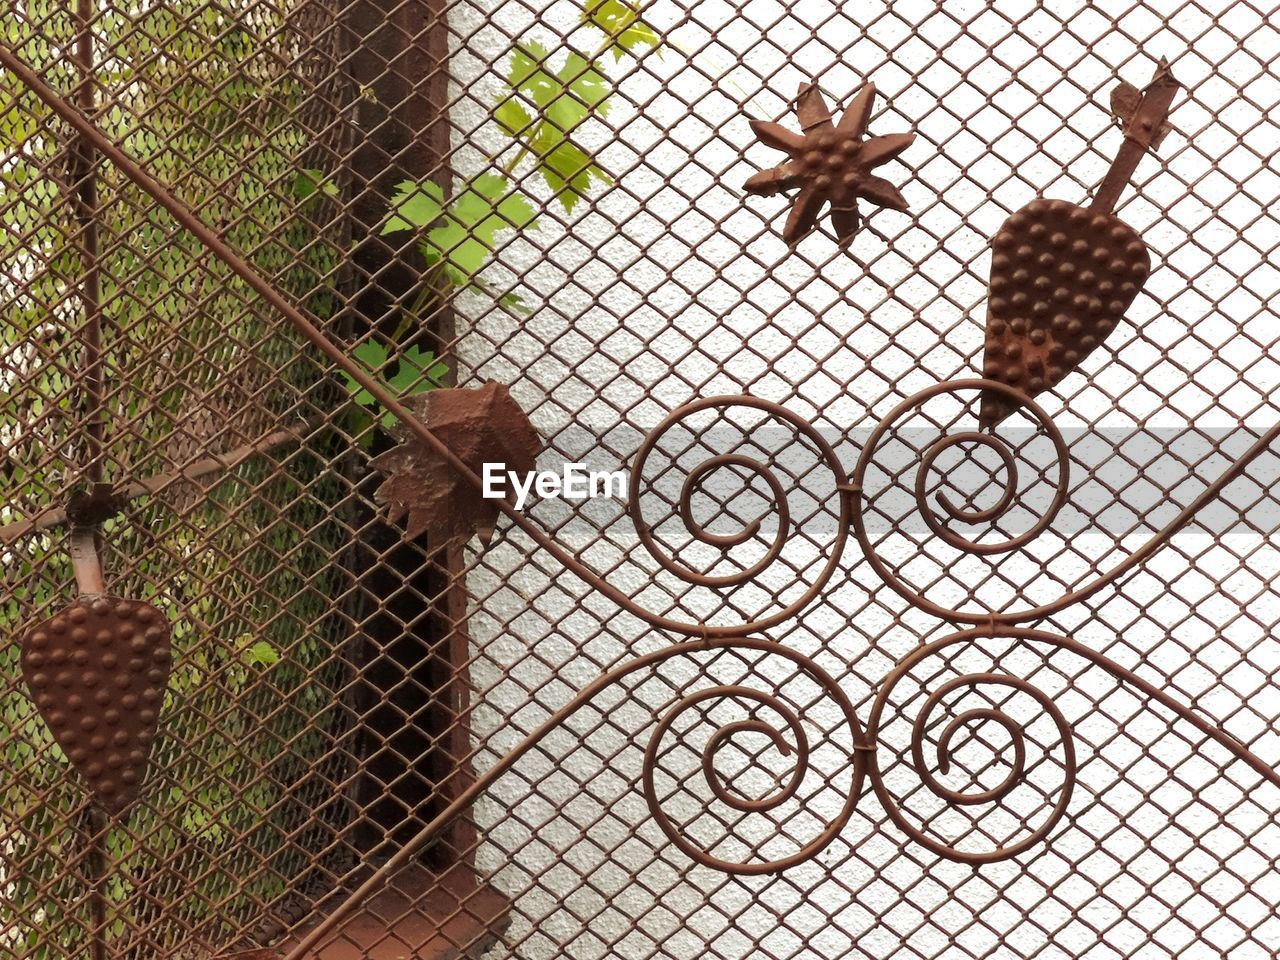 fence, barrier, boundary, no people, chainlink fence, security, protection, metal, animal wildlife, close-up, day, animal, brown, safety, animal themes, nature, one animal, pattern, outdoors, animals in the wild